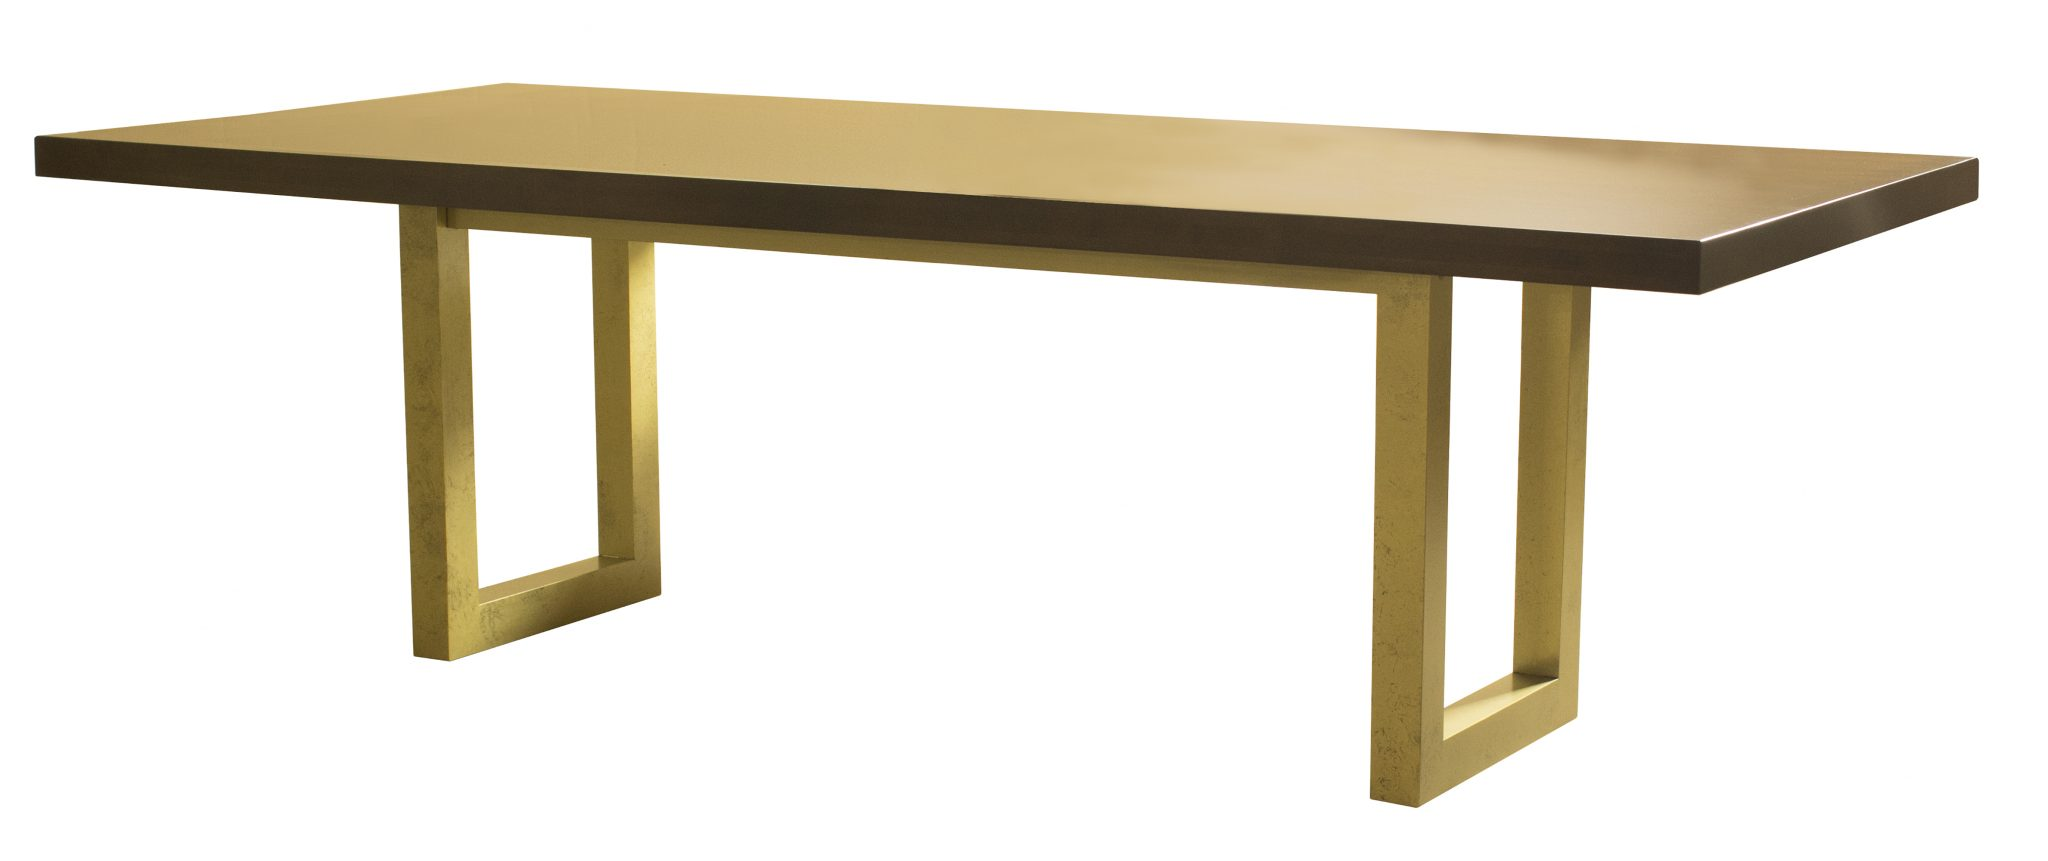 Emerson Dining Table – Saloom Furniture Company